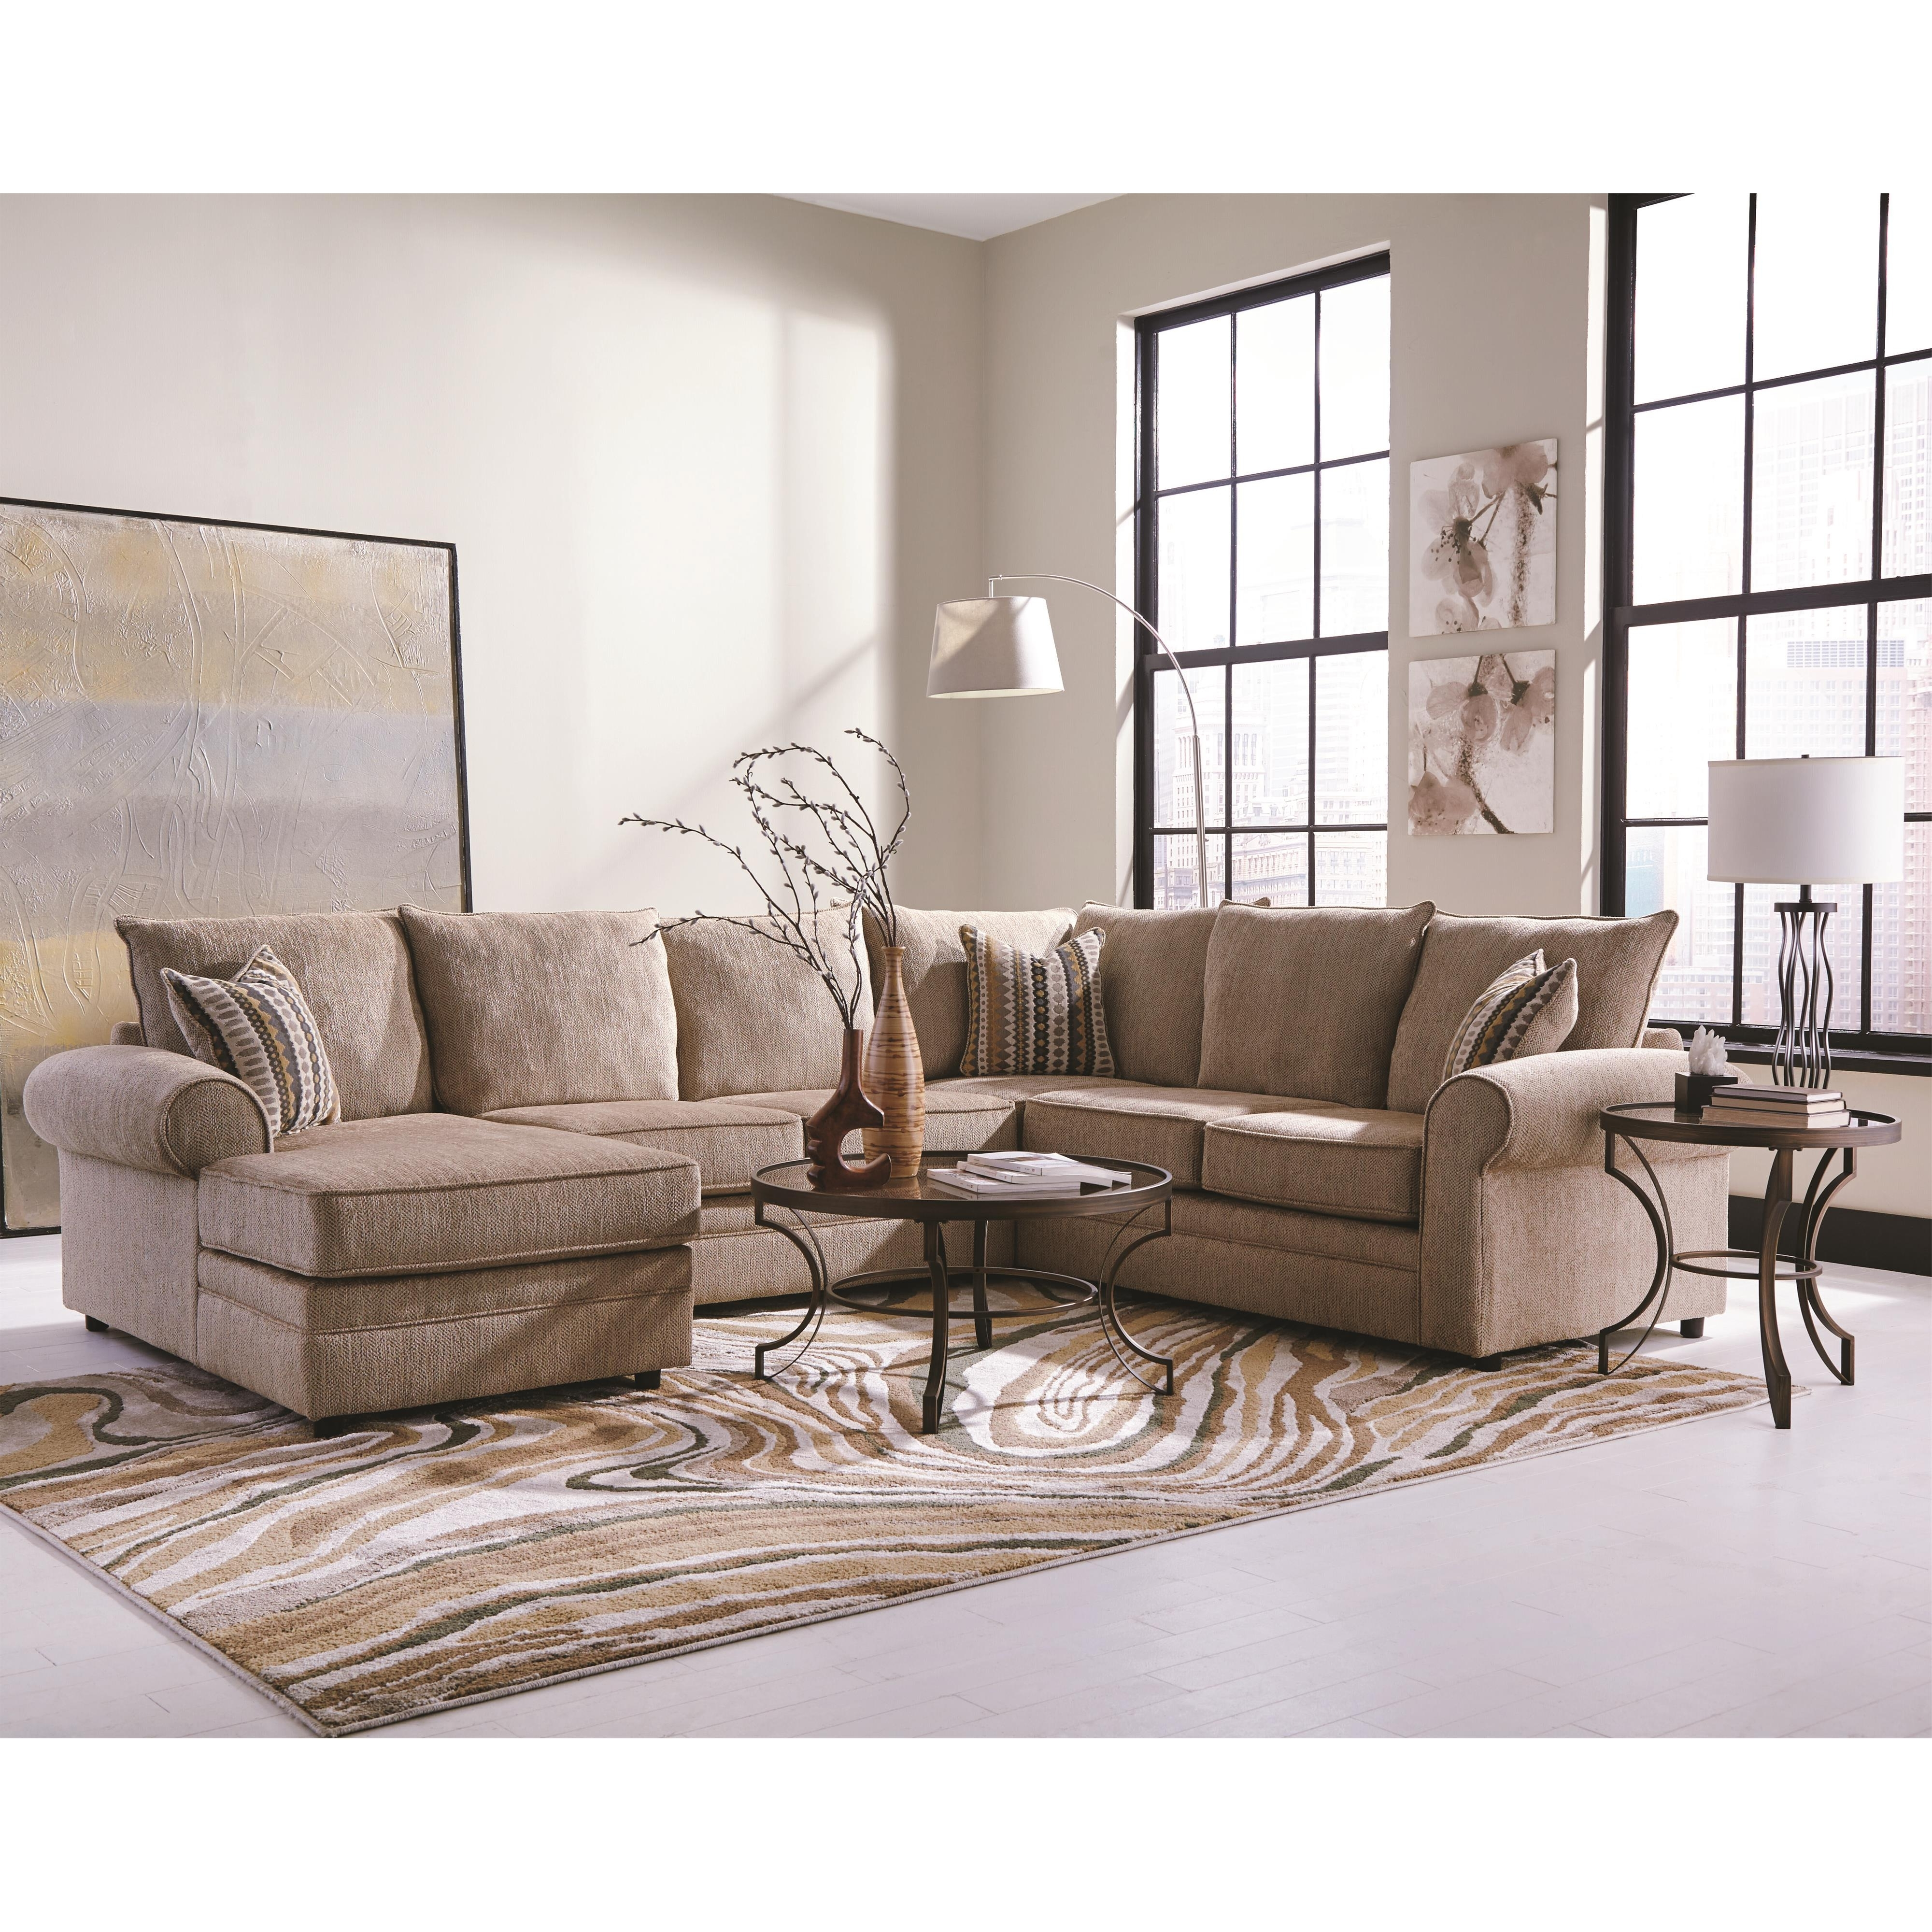 Cream Chaise Sofas Inside 2017 Coaster Fairhaven 501149 Cream Colored U Shaped Sectional With (View 3 of 15)